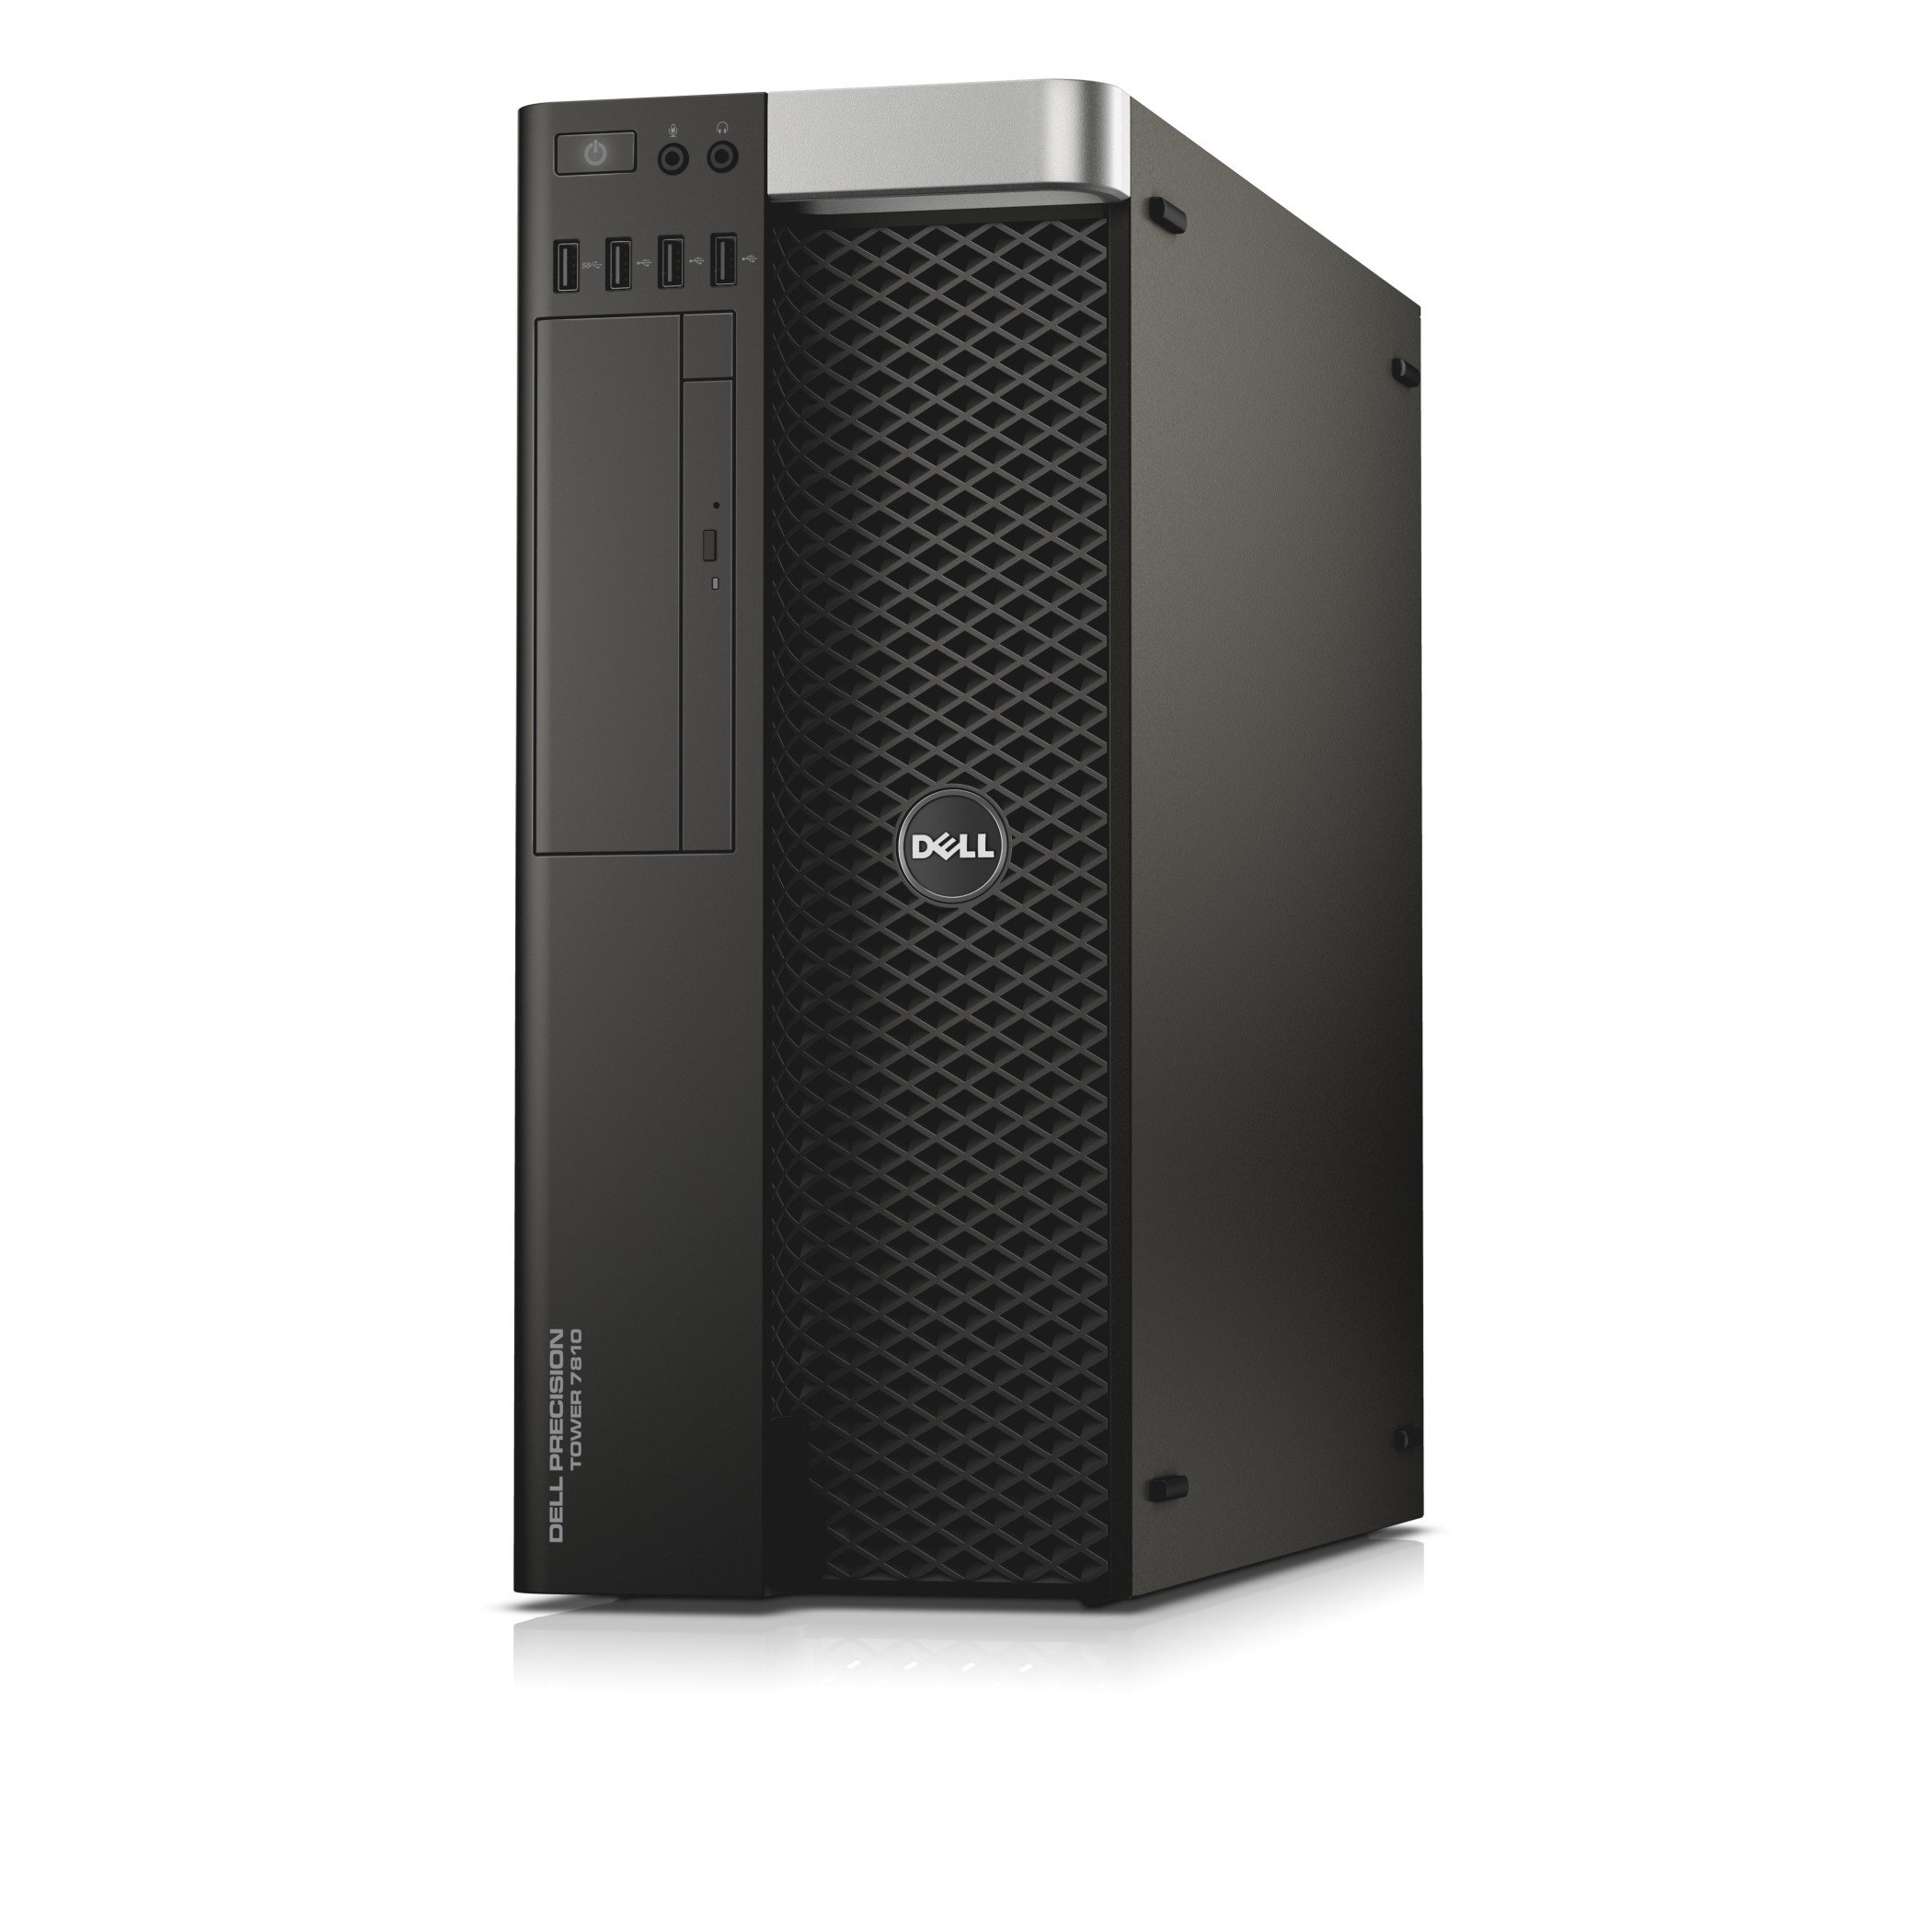 Dell Precision T7810 Workstation 2X Intel Xeon E5-2690 V3 2.6GHz 12 Core 64GB DDR4 Memory Quadro K5000 480GB SSD + 1TB HDD Win 10 Pro (Certified Refurbished)